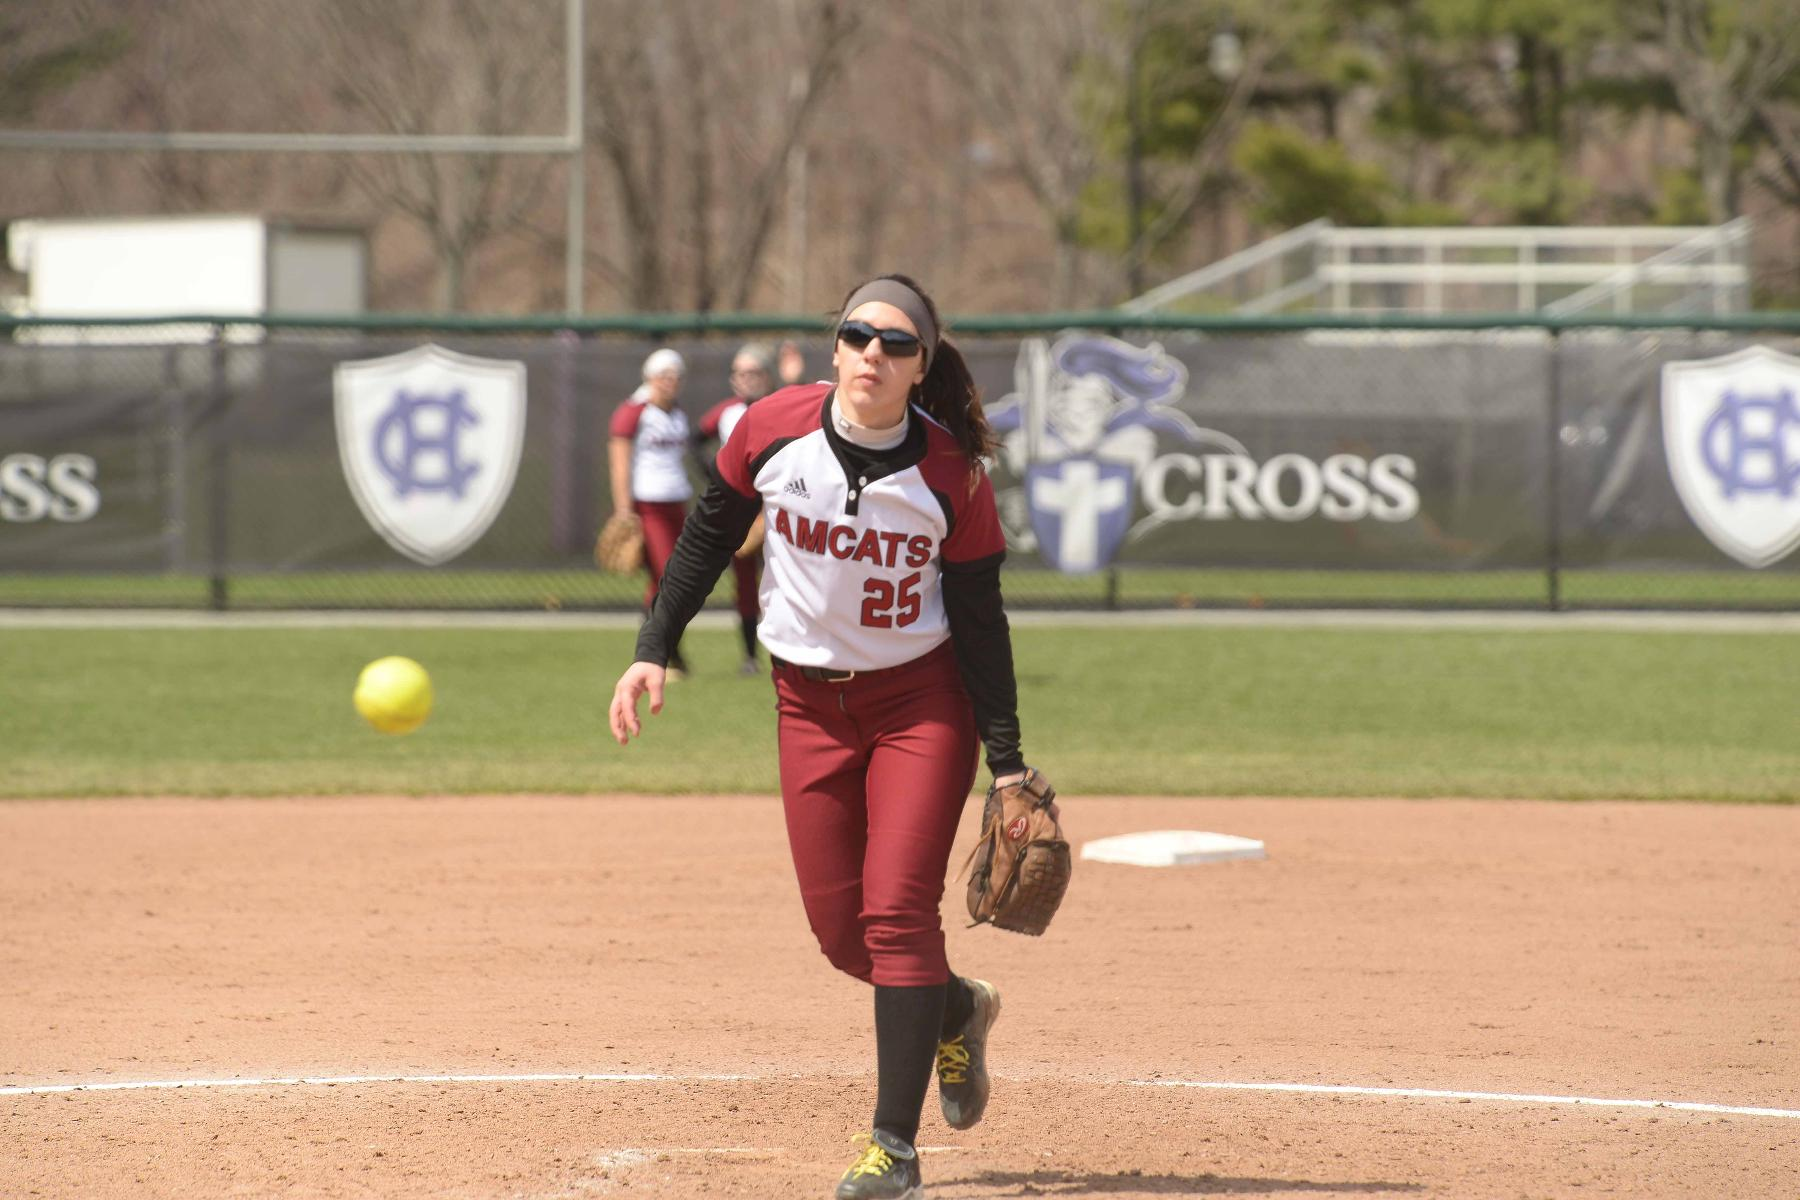 AMCATS Fall in Final Inning with SUNY POLY